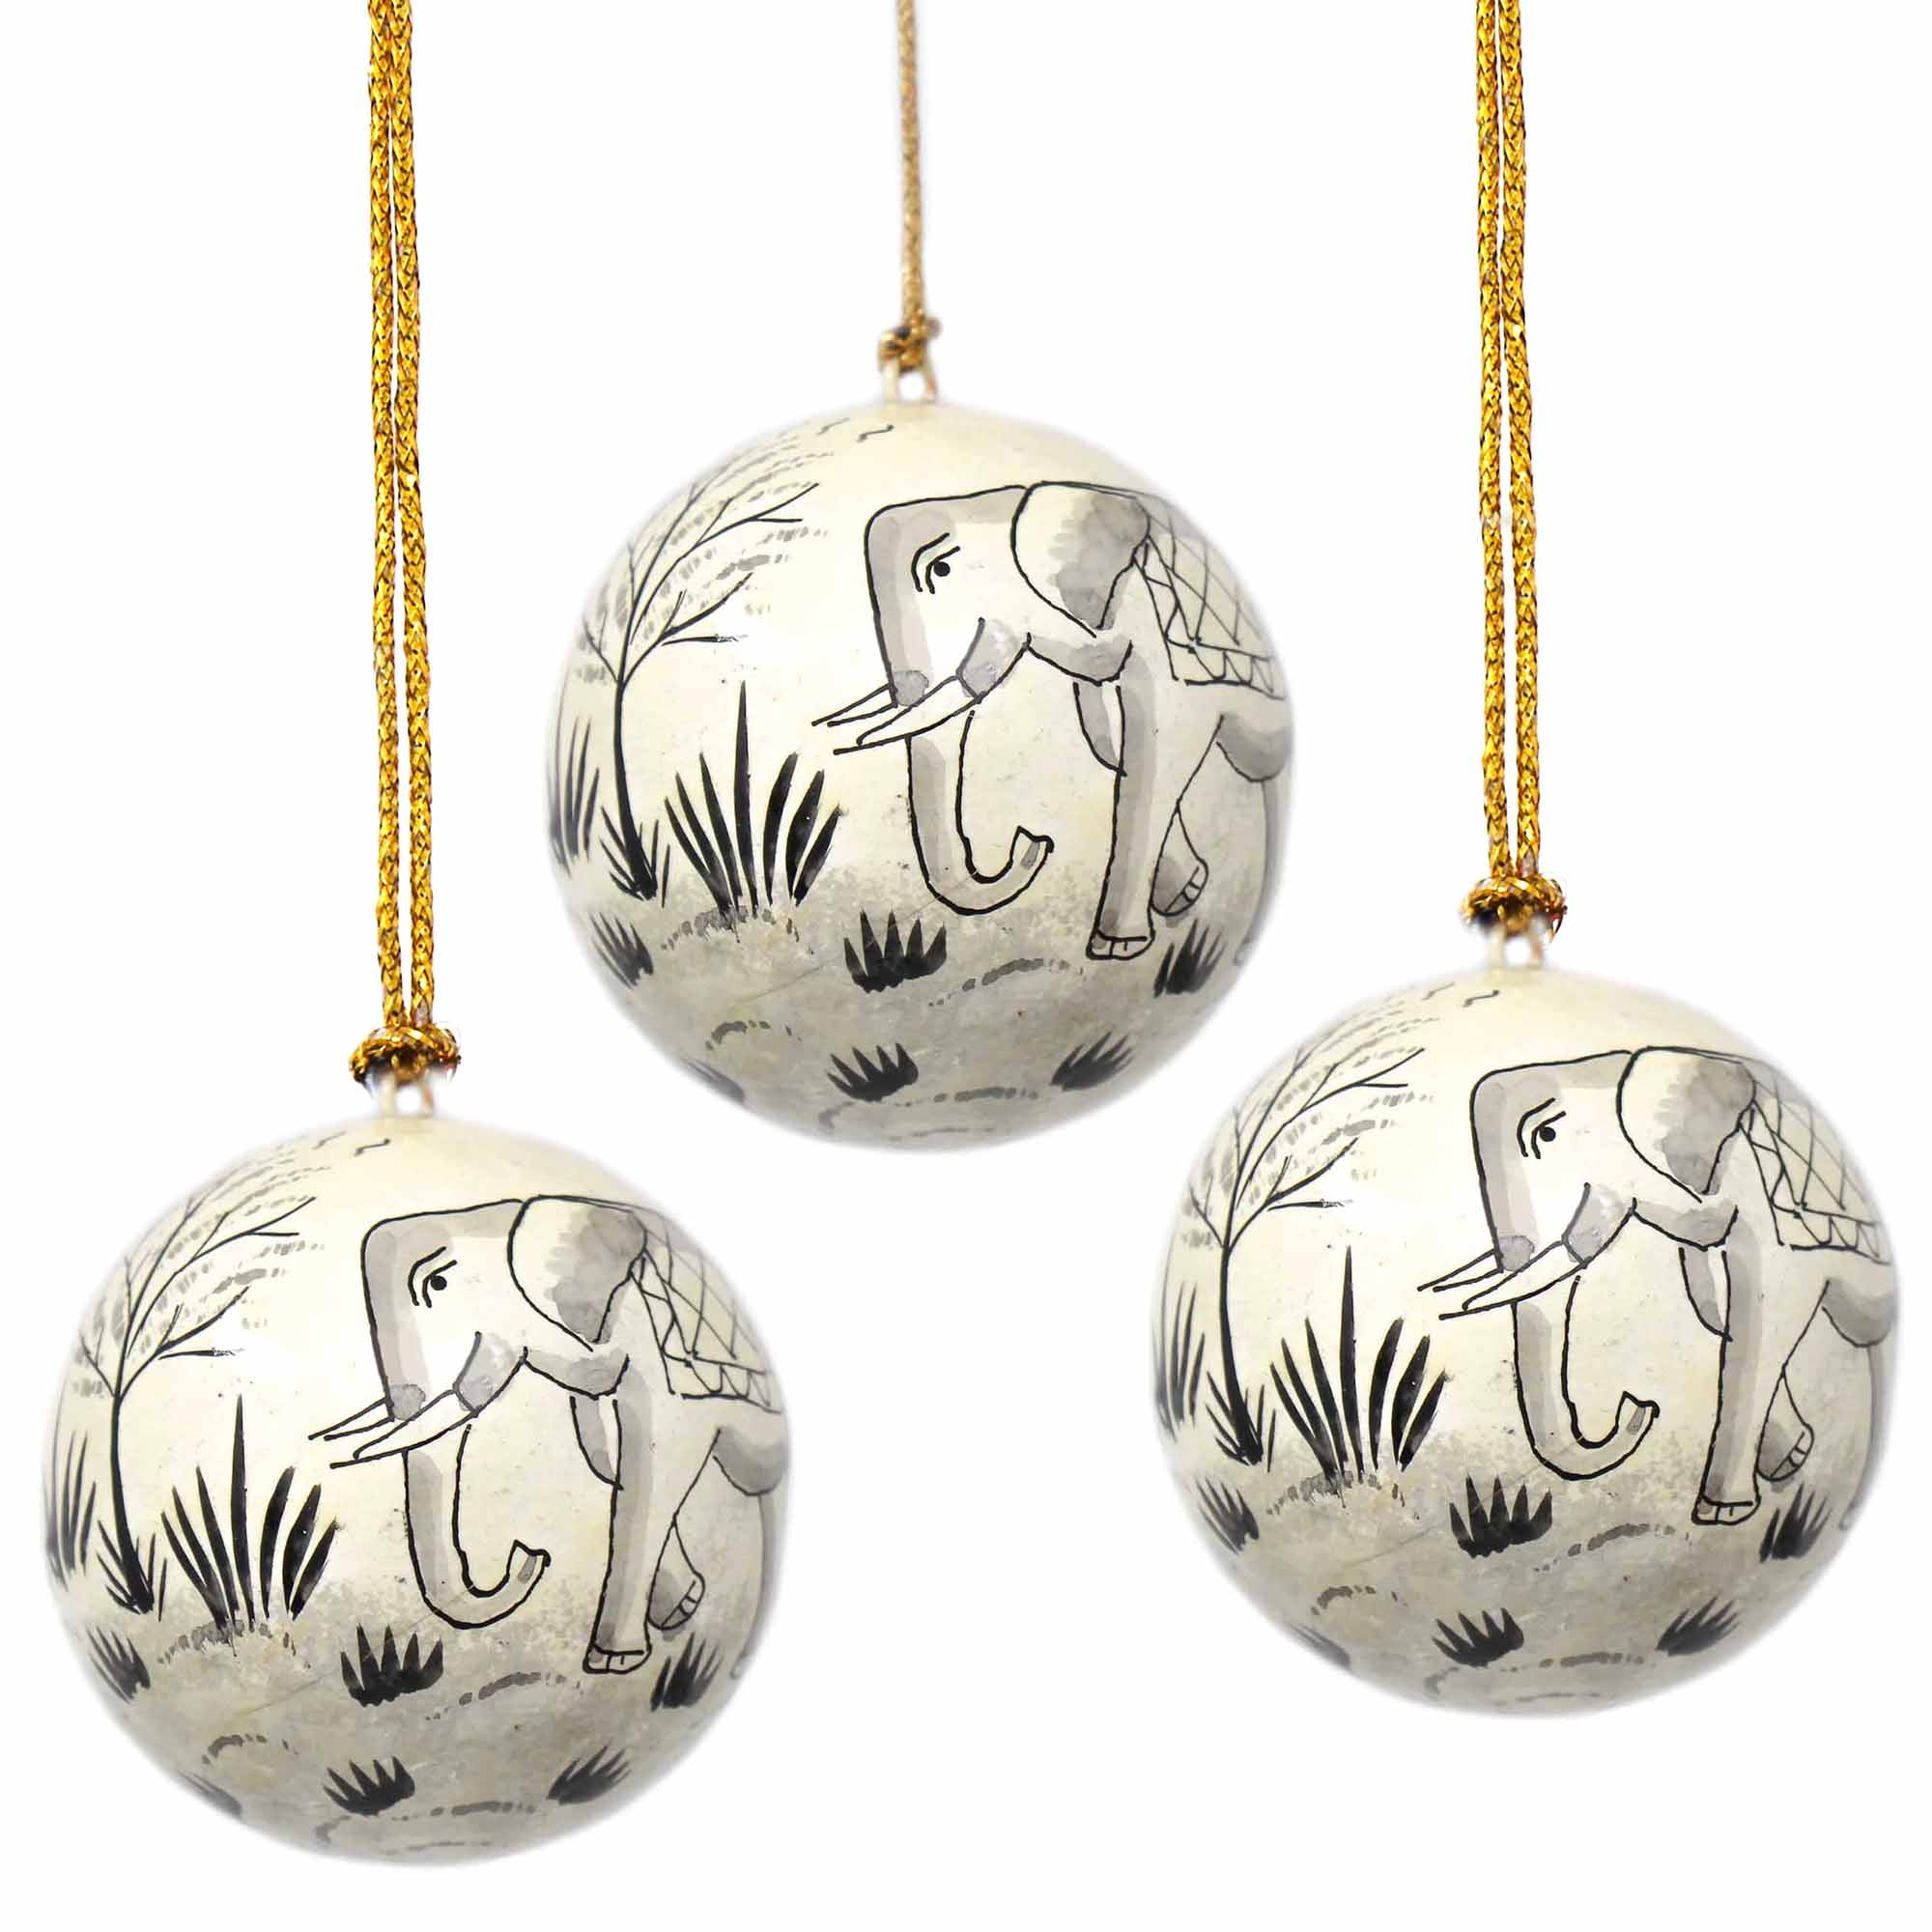 Handpainted Ornament Elephant - Pack of 3